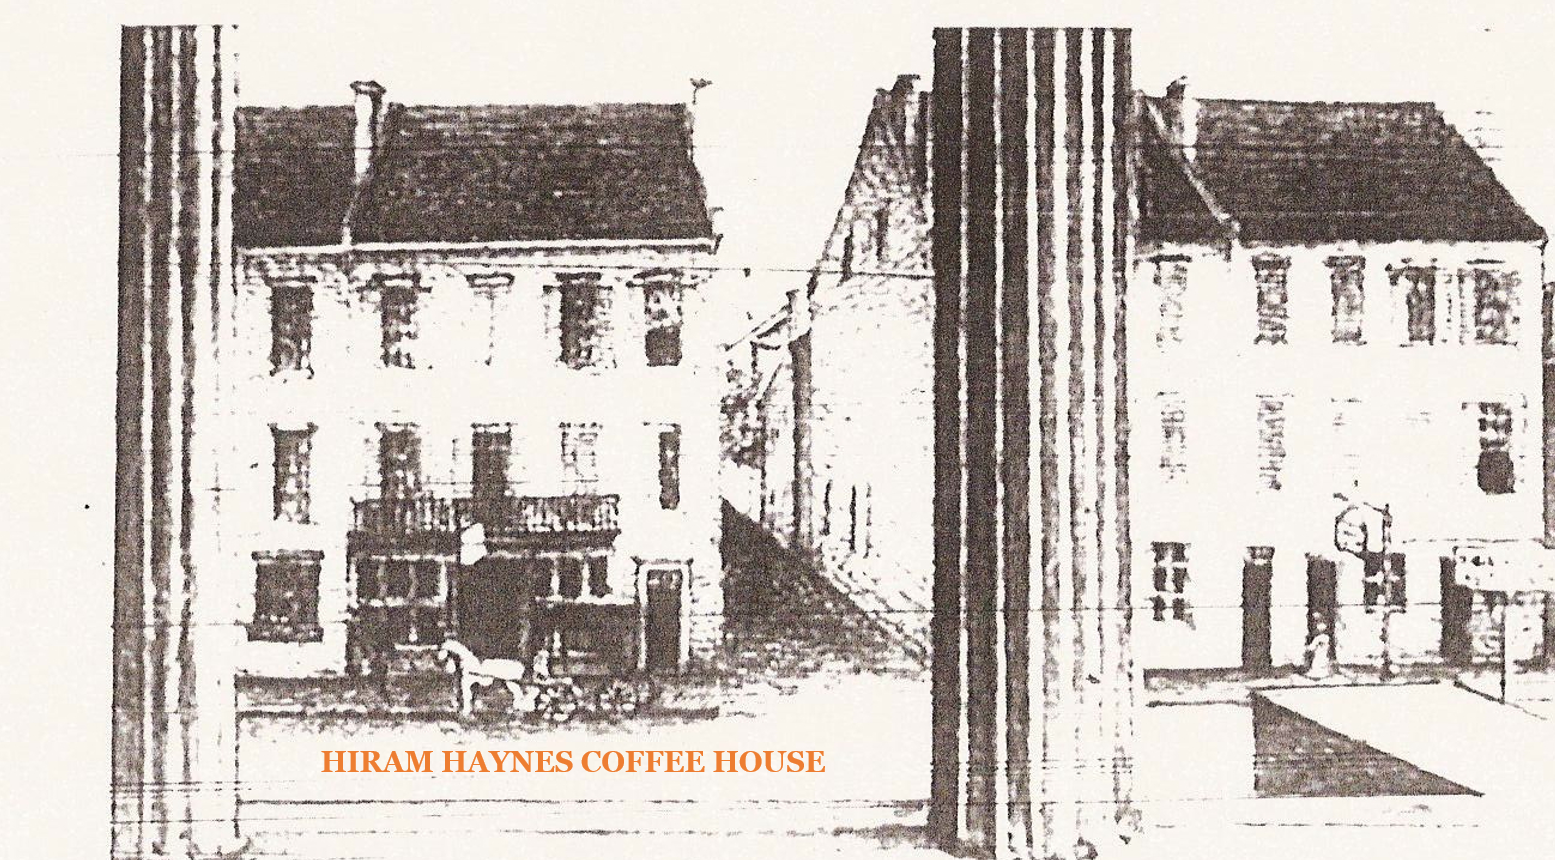 Hiram Haines Coffee Shop from The Exchange Building